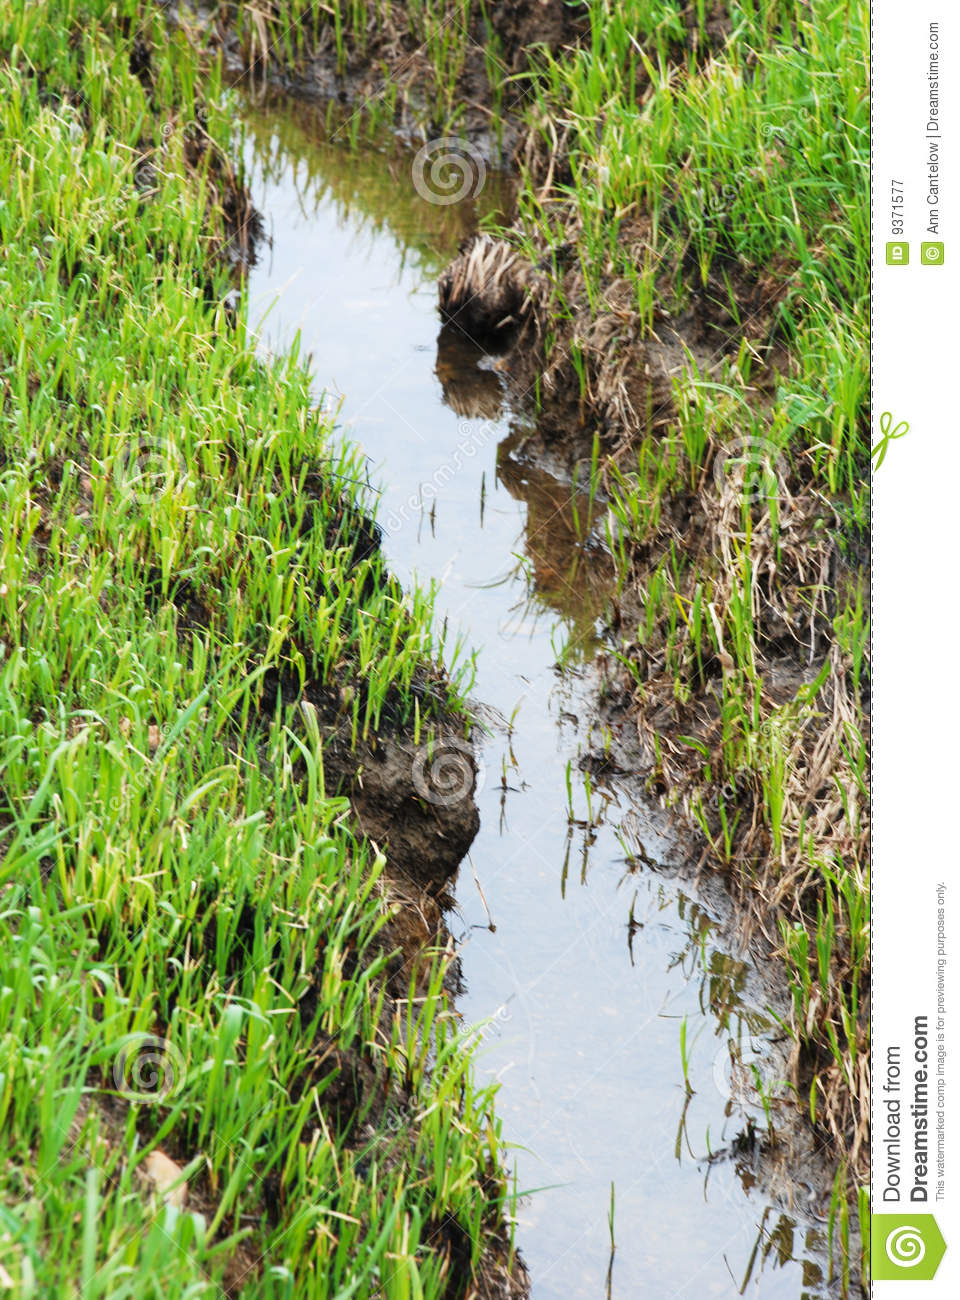 Standing Water In A Small Ditch Or Puddle Royalty Free Stock Photography Image 9371577